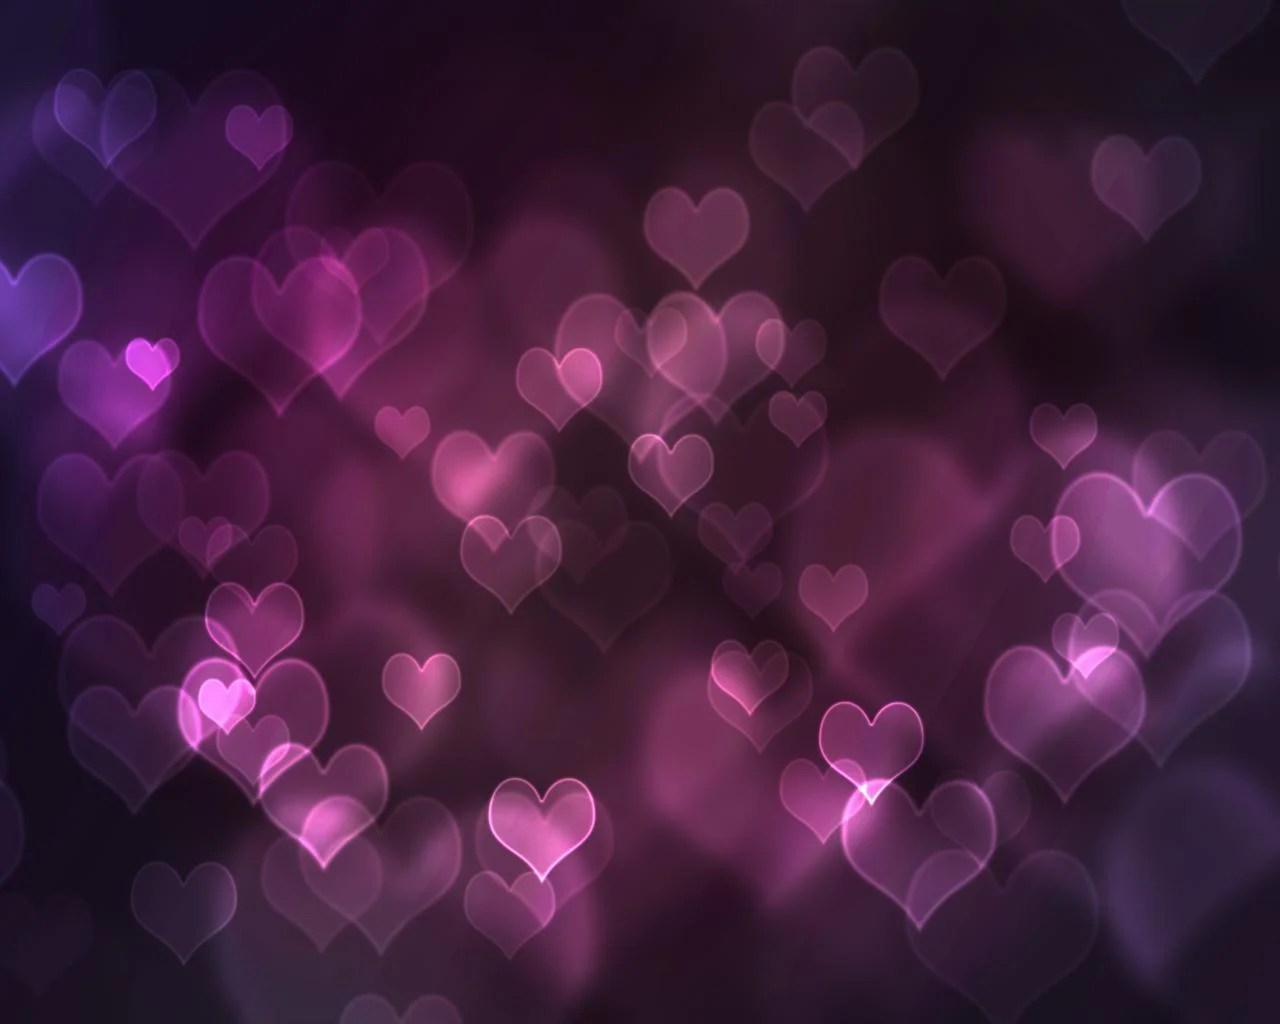 Free Heart Wallpapers   Wallpaper Cave Wallpapers For   Blue And Purple Hearts Wallpaper